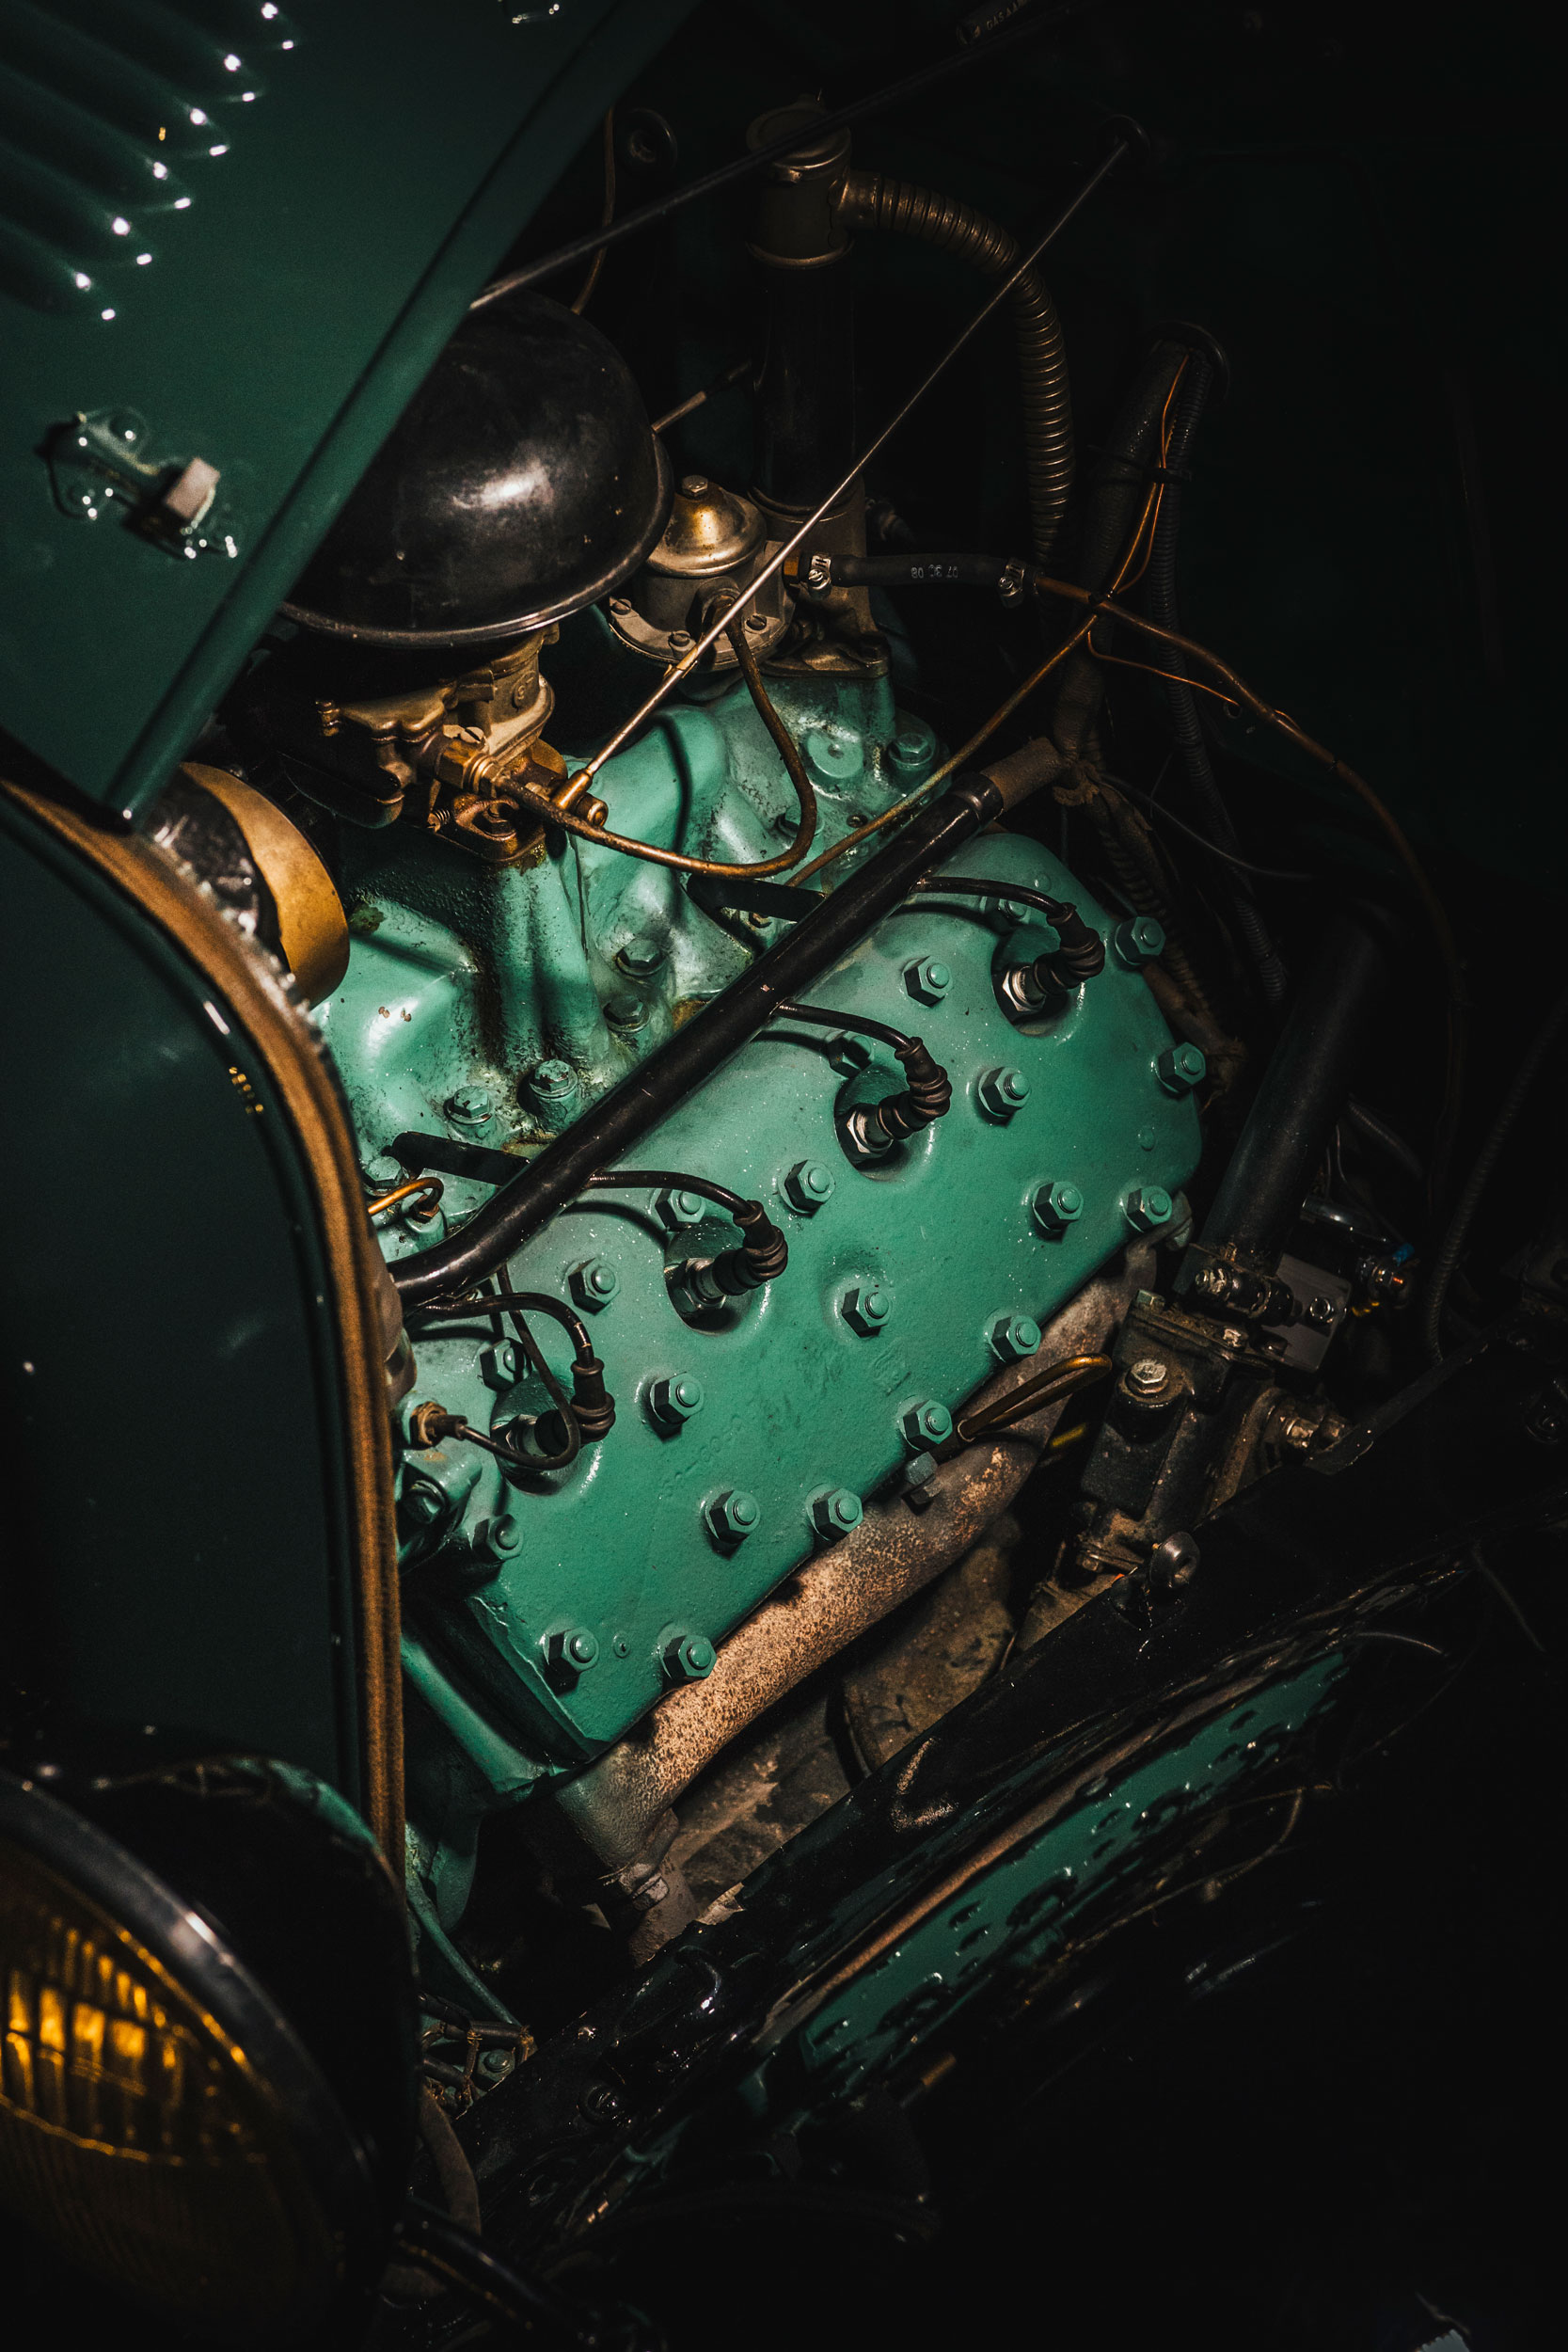 The Ford flathead V-8, which debuted in 1932 after a breakneck development period, went on to power everything from trucks to land speed racers.